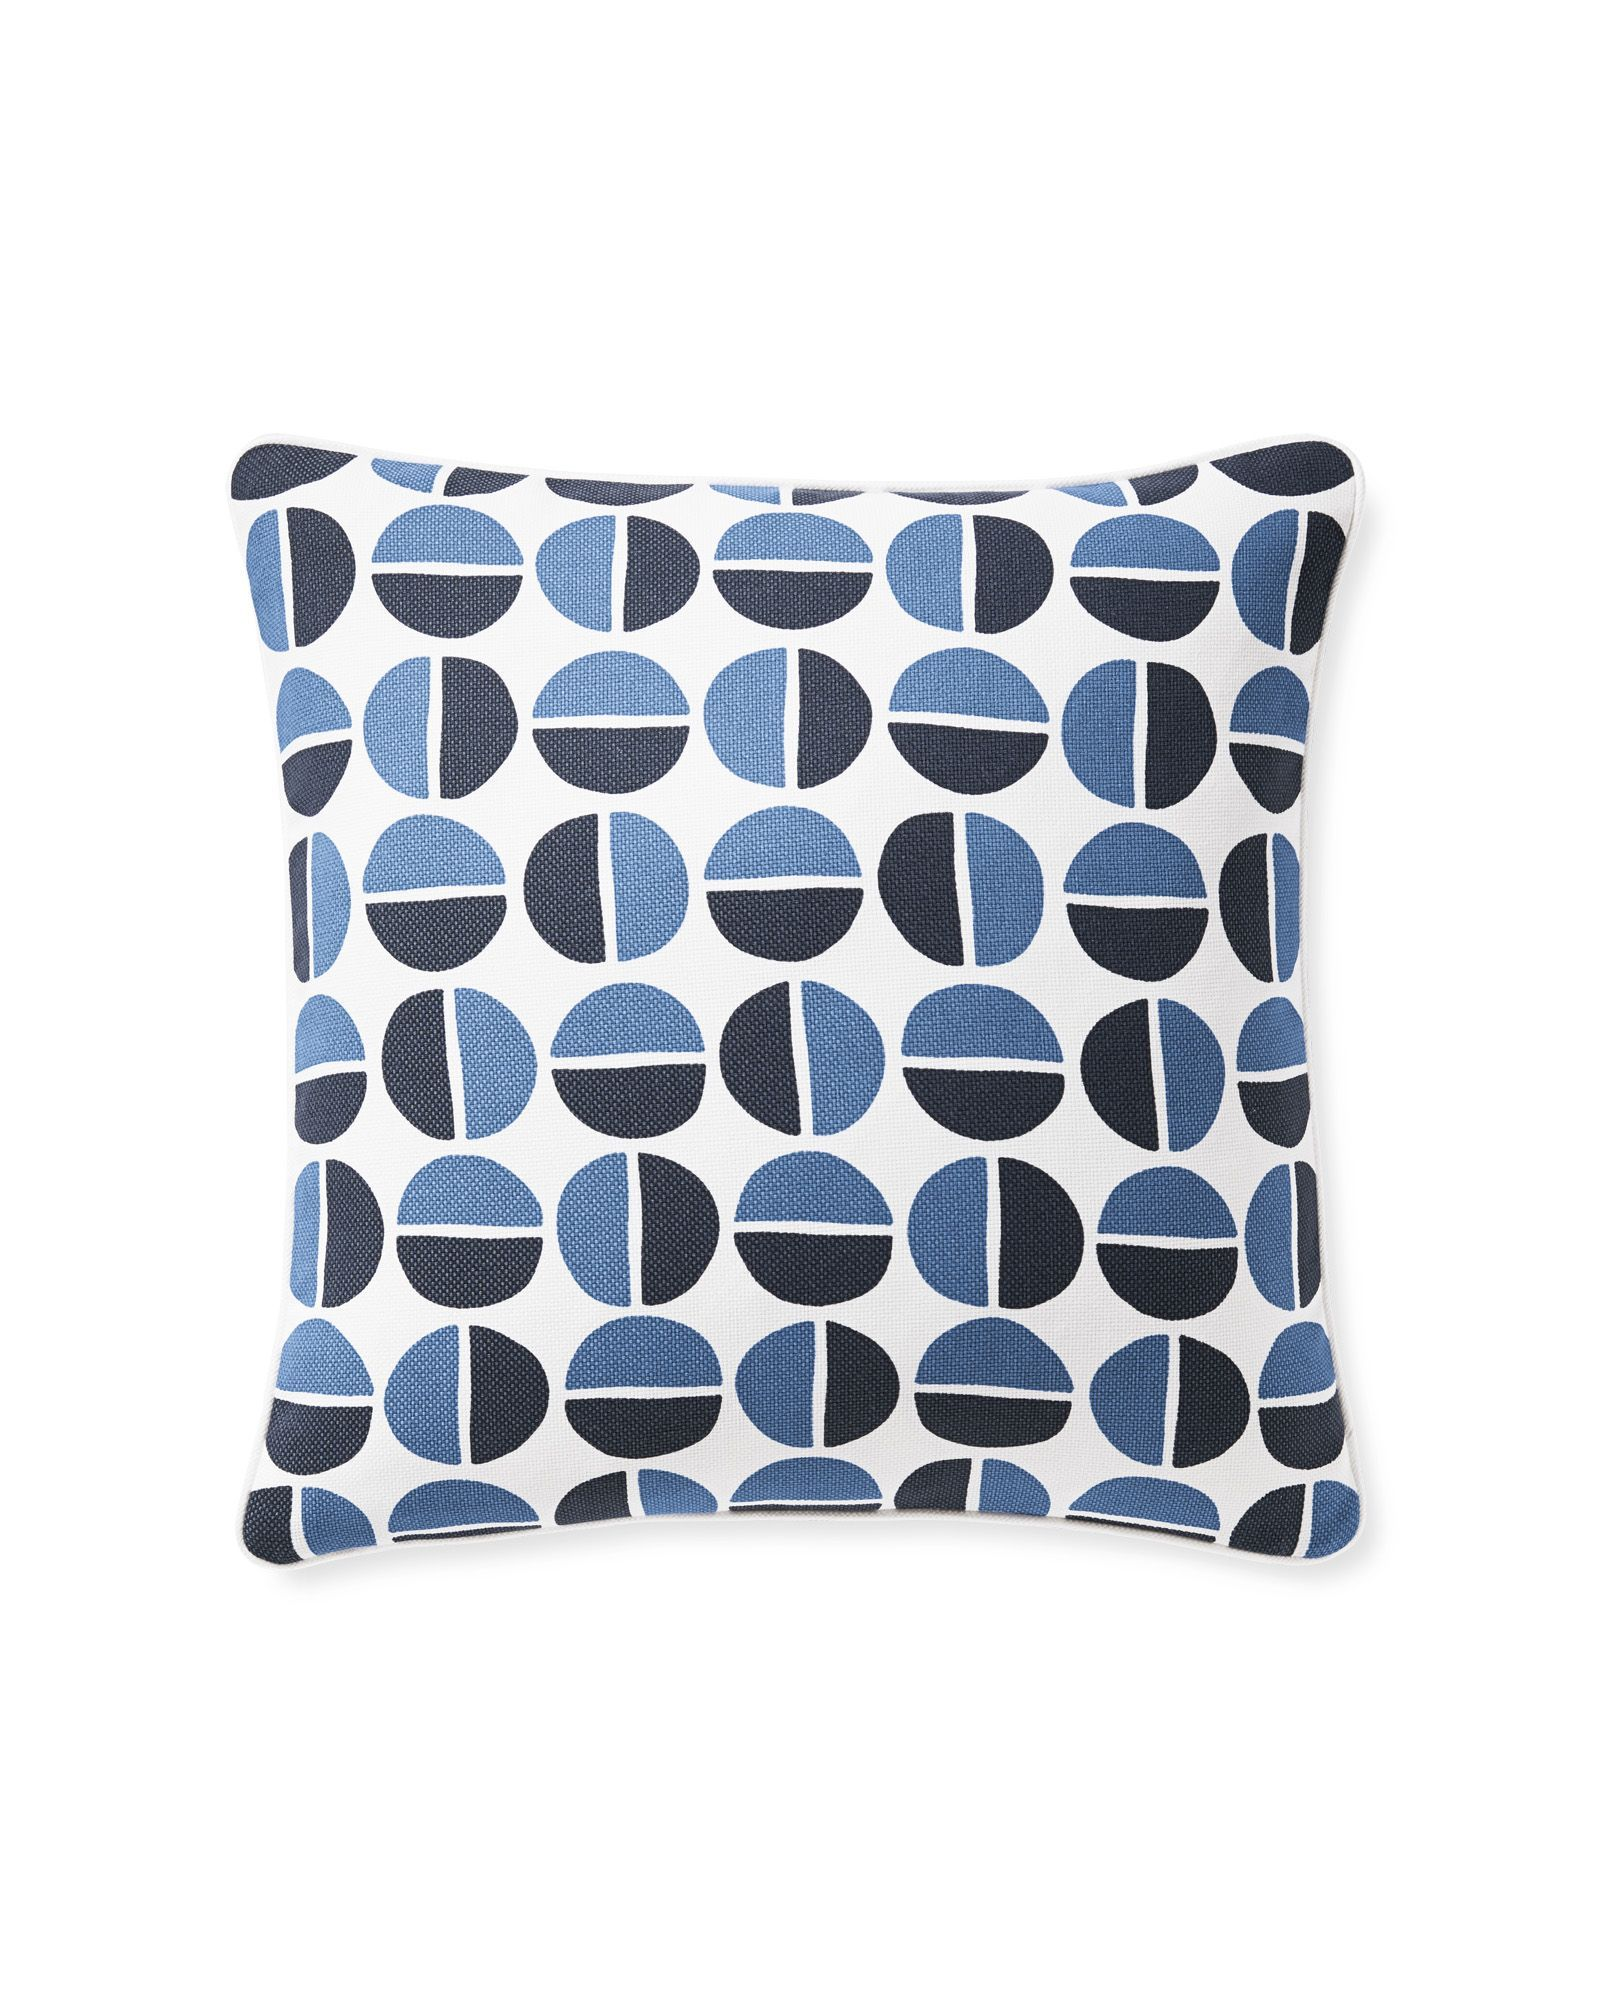 Designed by serena the slightly imperfect geometric circles give